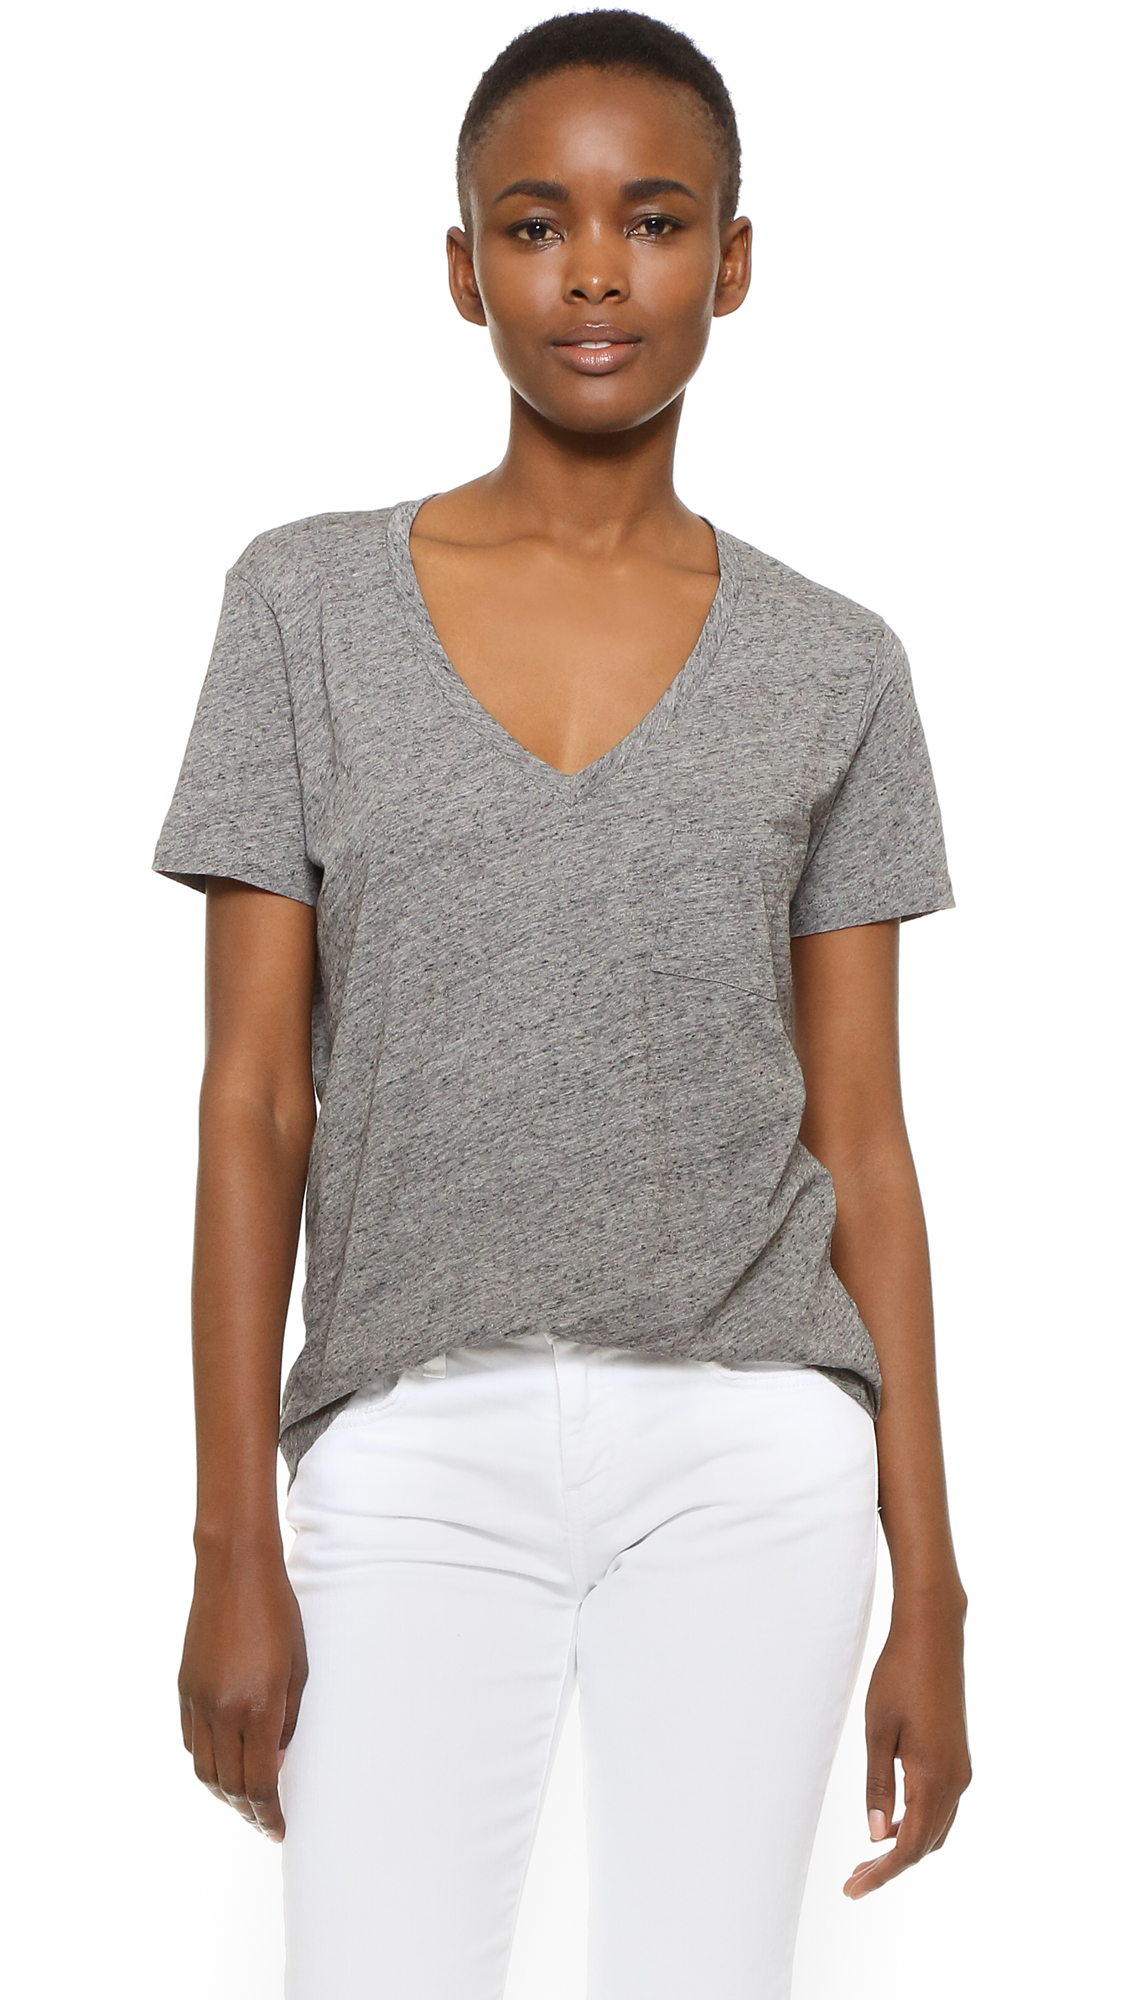 Madewell Whisper Cotton V Neck Pocket Tee - Heather Pewter